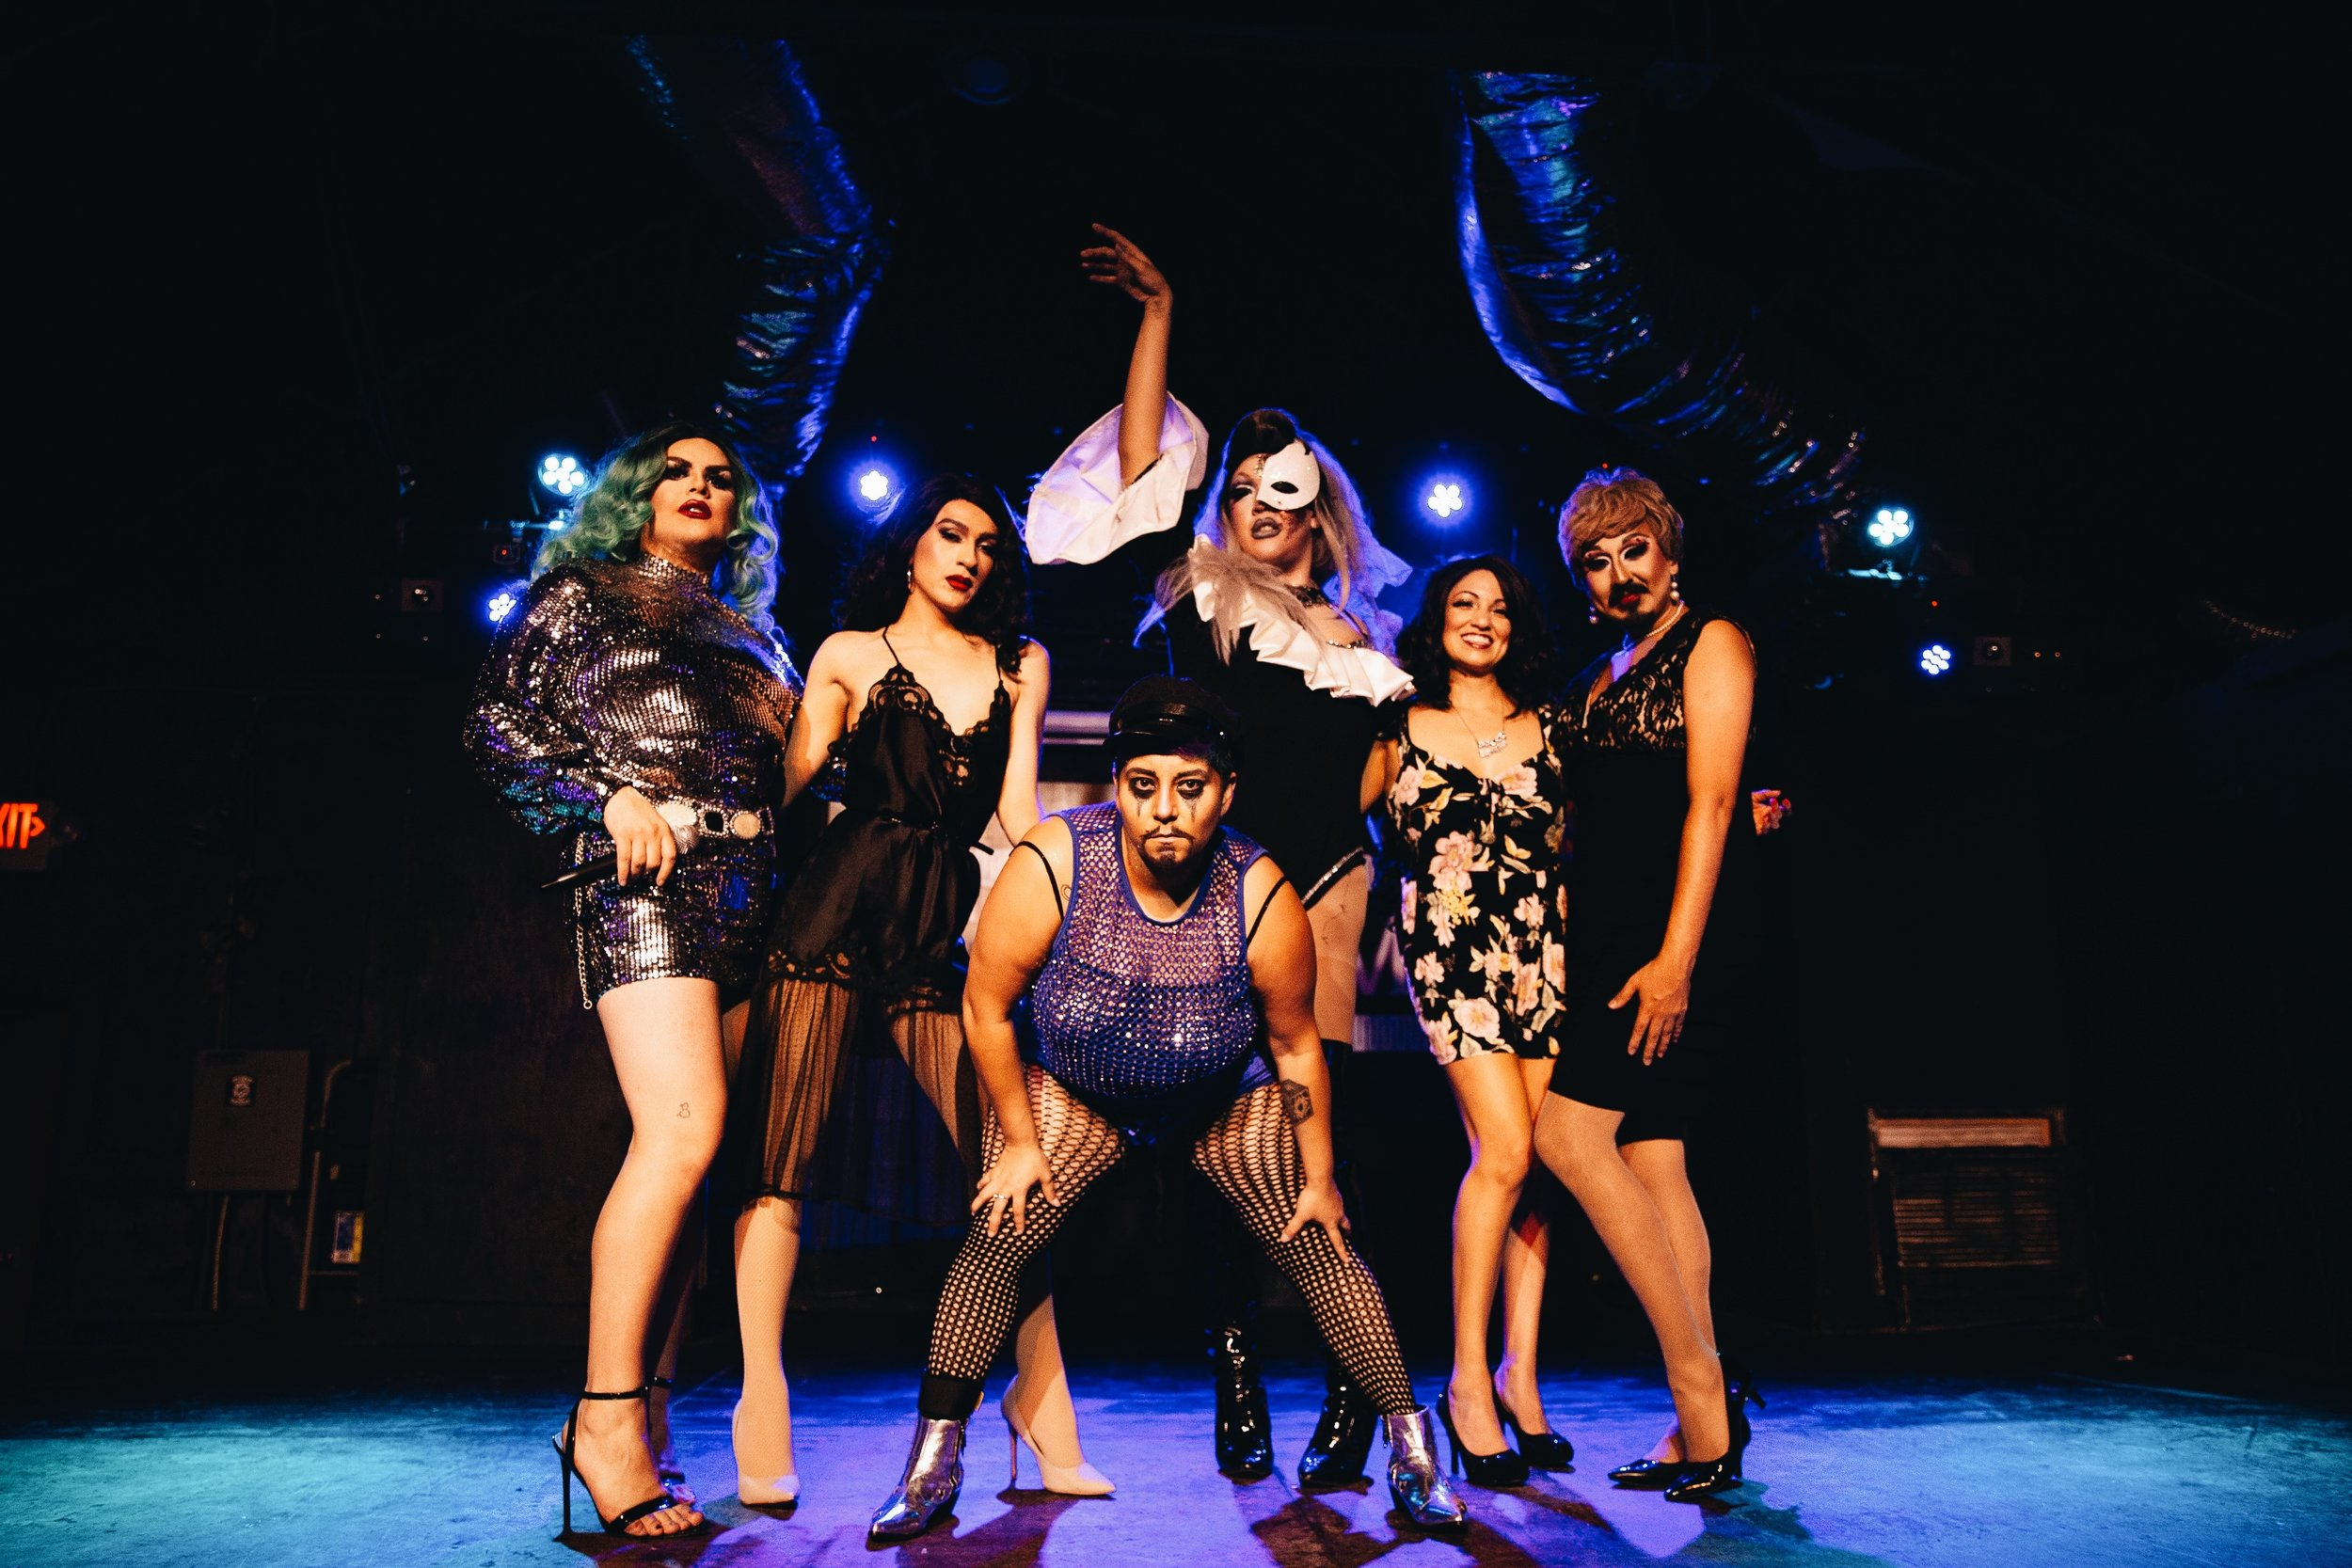 From Left to right  @Tatianacholula   @Rvbyknight   @Papichurroatx   @Thebansheerose  with special guest Dolce Burlique and  @Grandmasteven